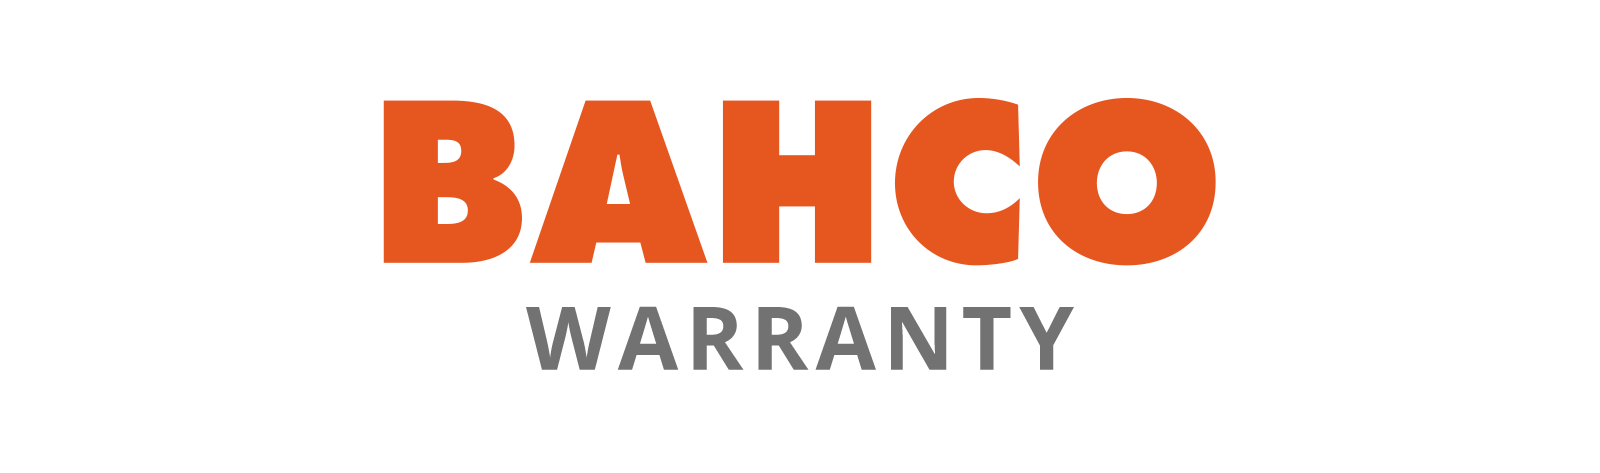 bahco-warranty.png